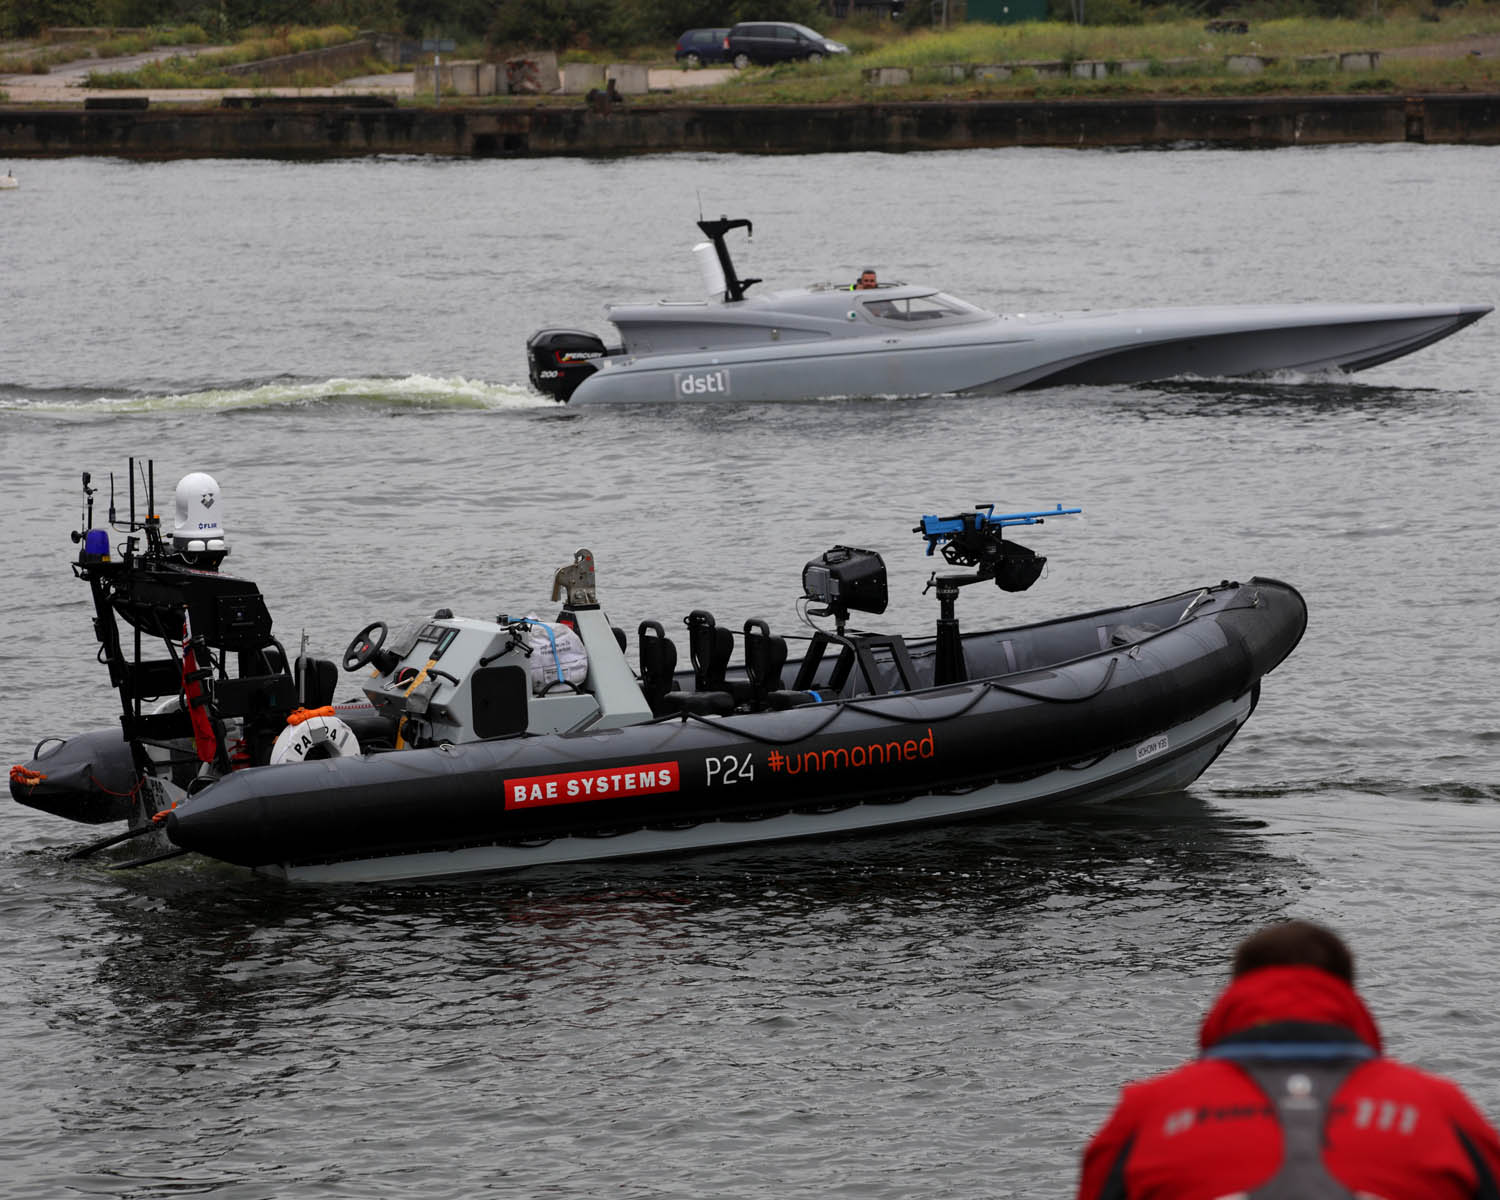 The unmanned Royal Navy Pac 24 Navy X at the DSEI event at the London Excel Centre. (Image: Royal Navy)